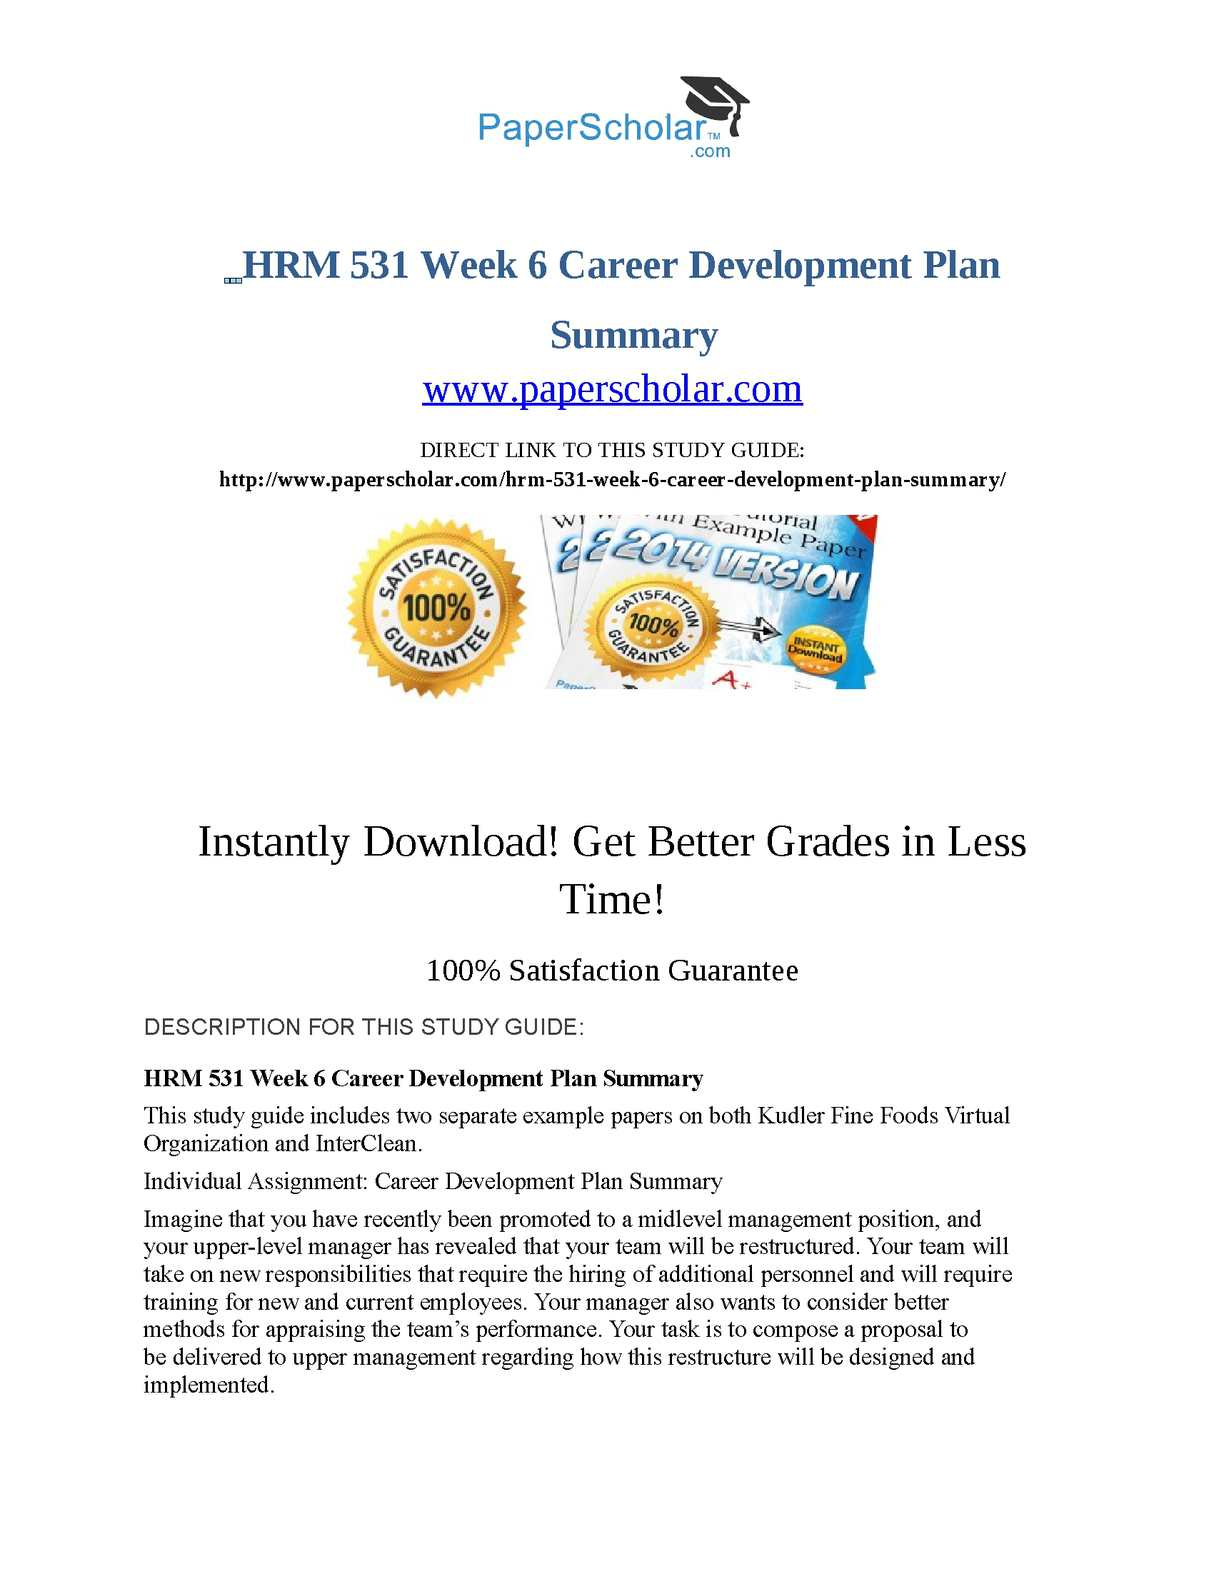 career management plan summary hrm 531